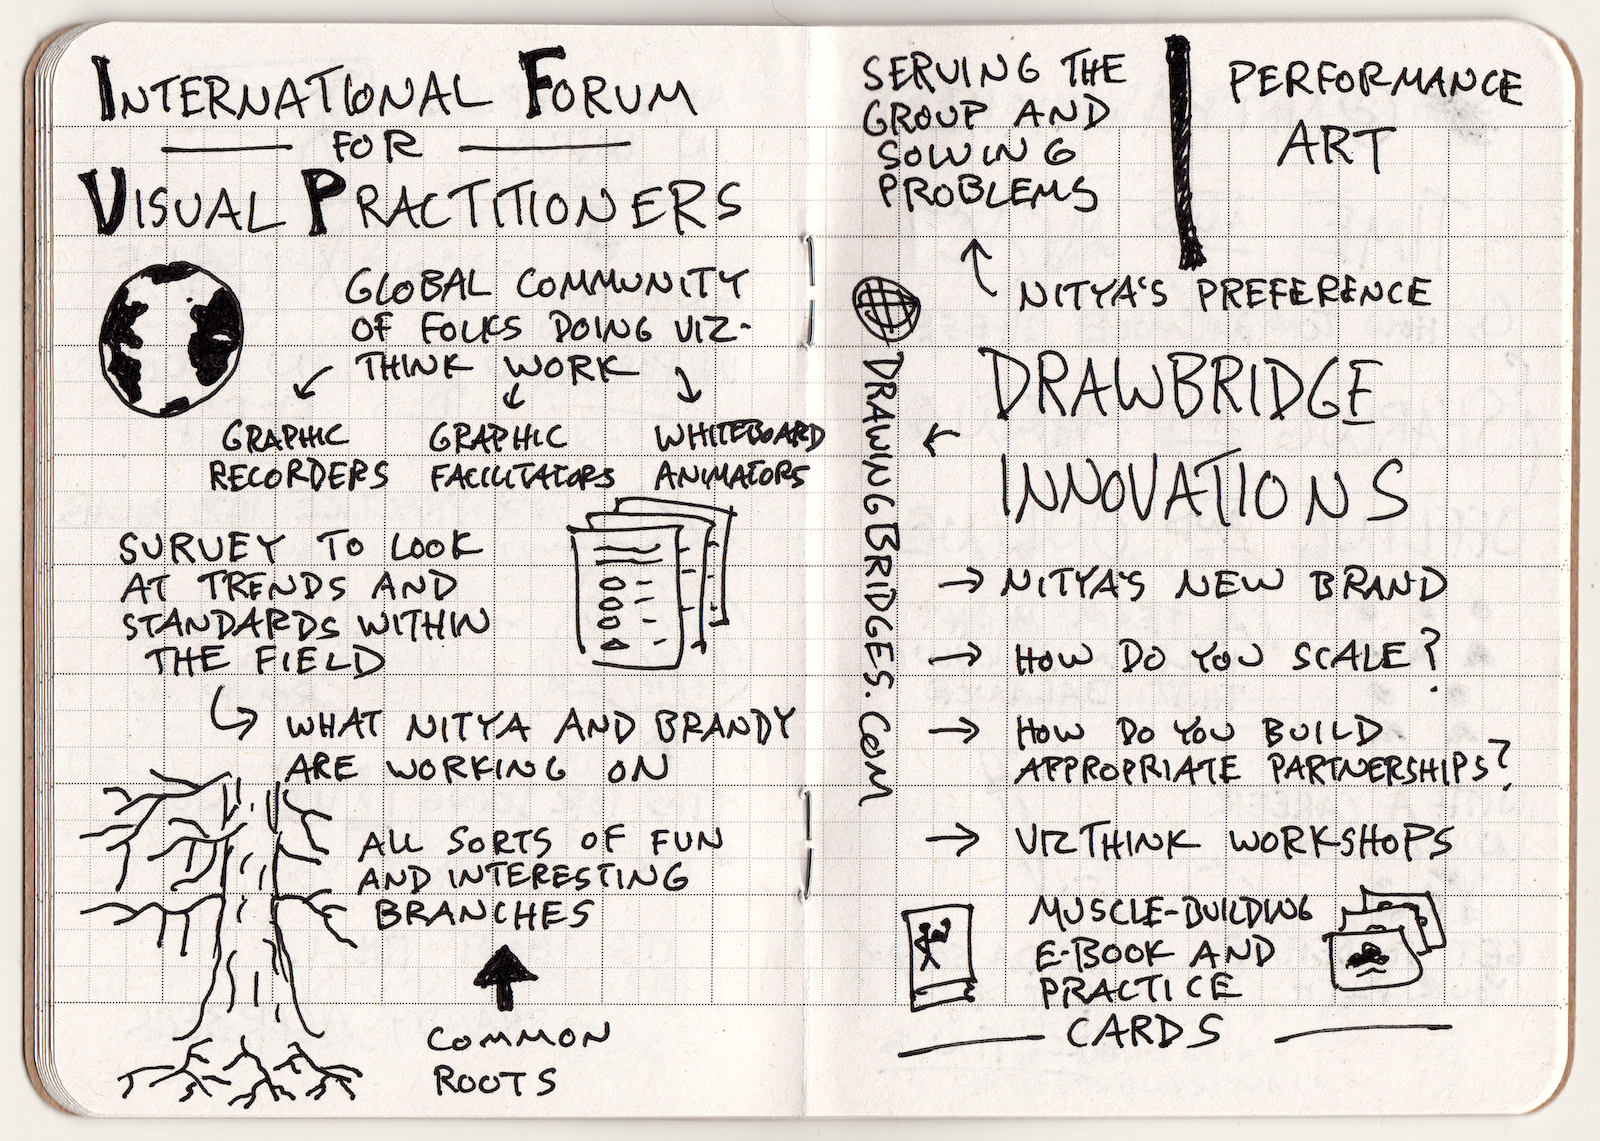 Nitya Wakhlu Serving Groups And Solving Problems (3) - The Verbal To Visual Podcast - international forum of visual practitioners, graphic recorders, graphic facilitators, whiteboard animators, survey, drawbridge innovations